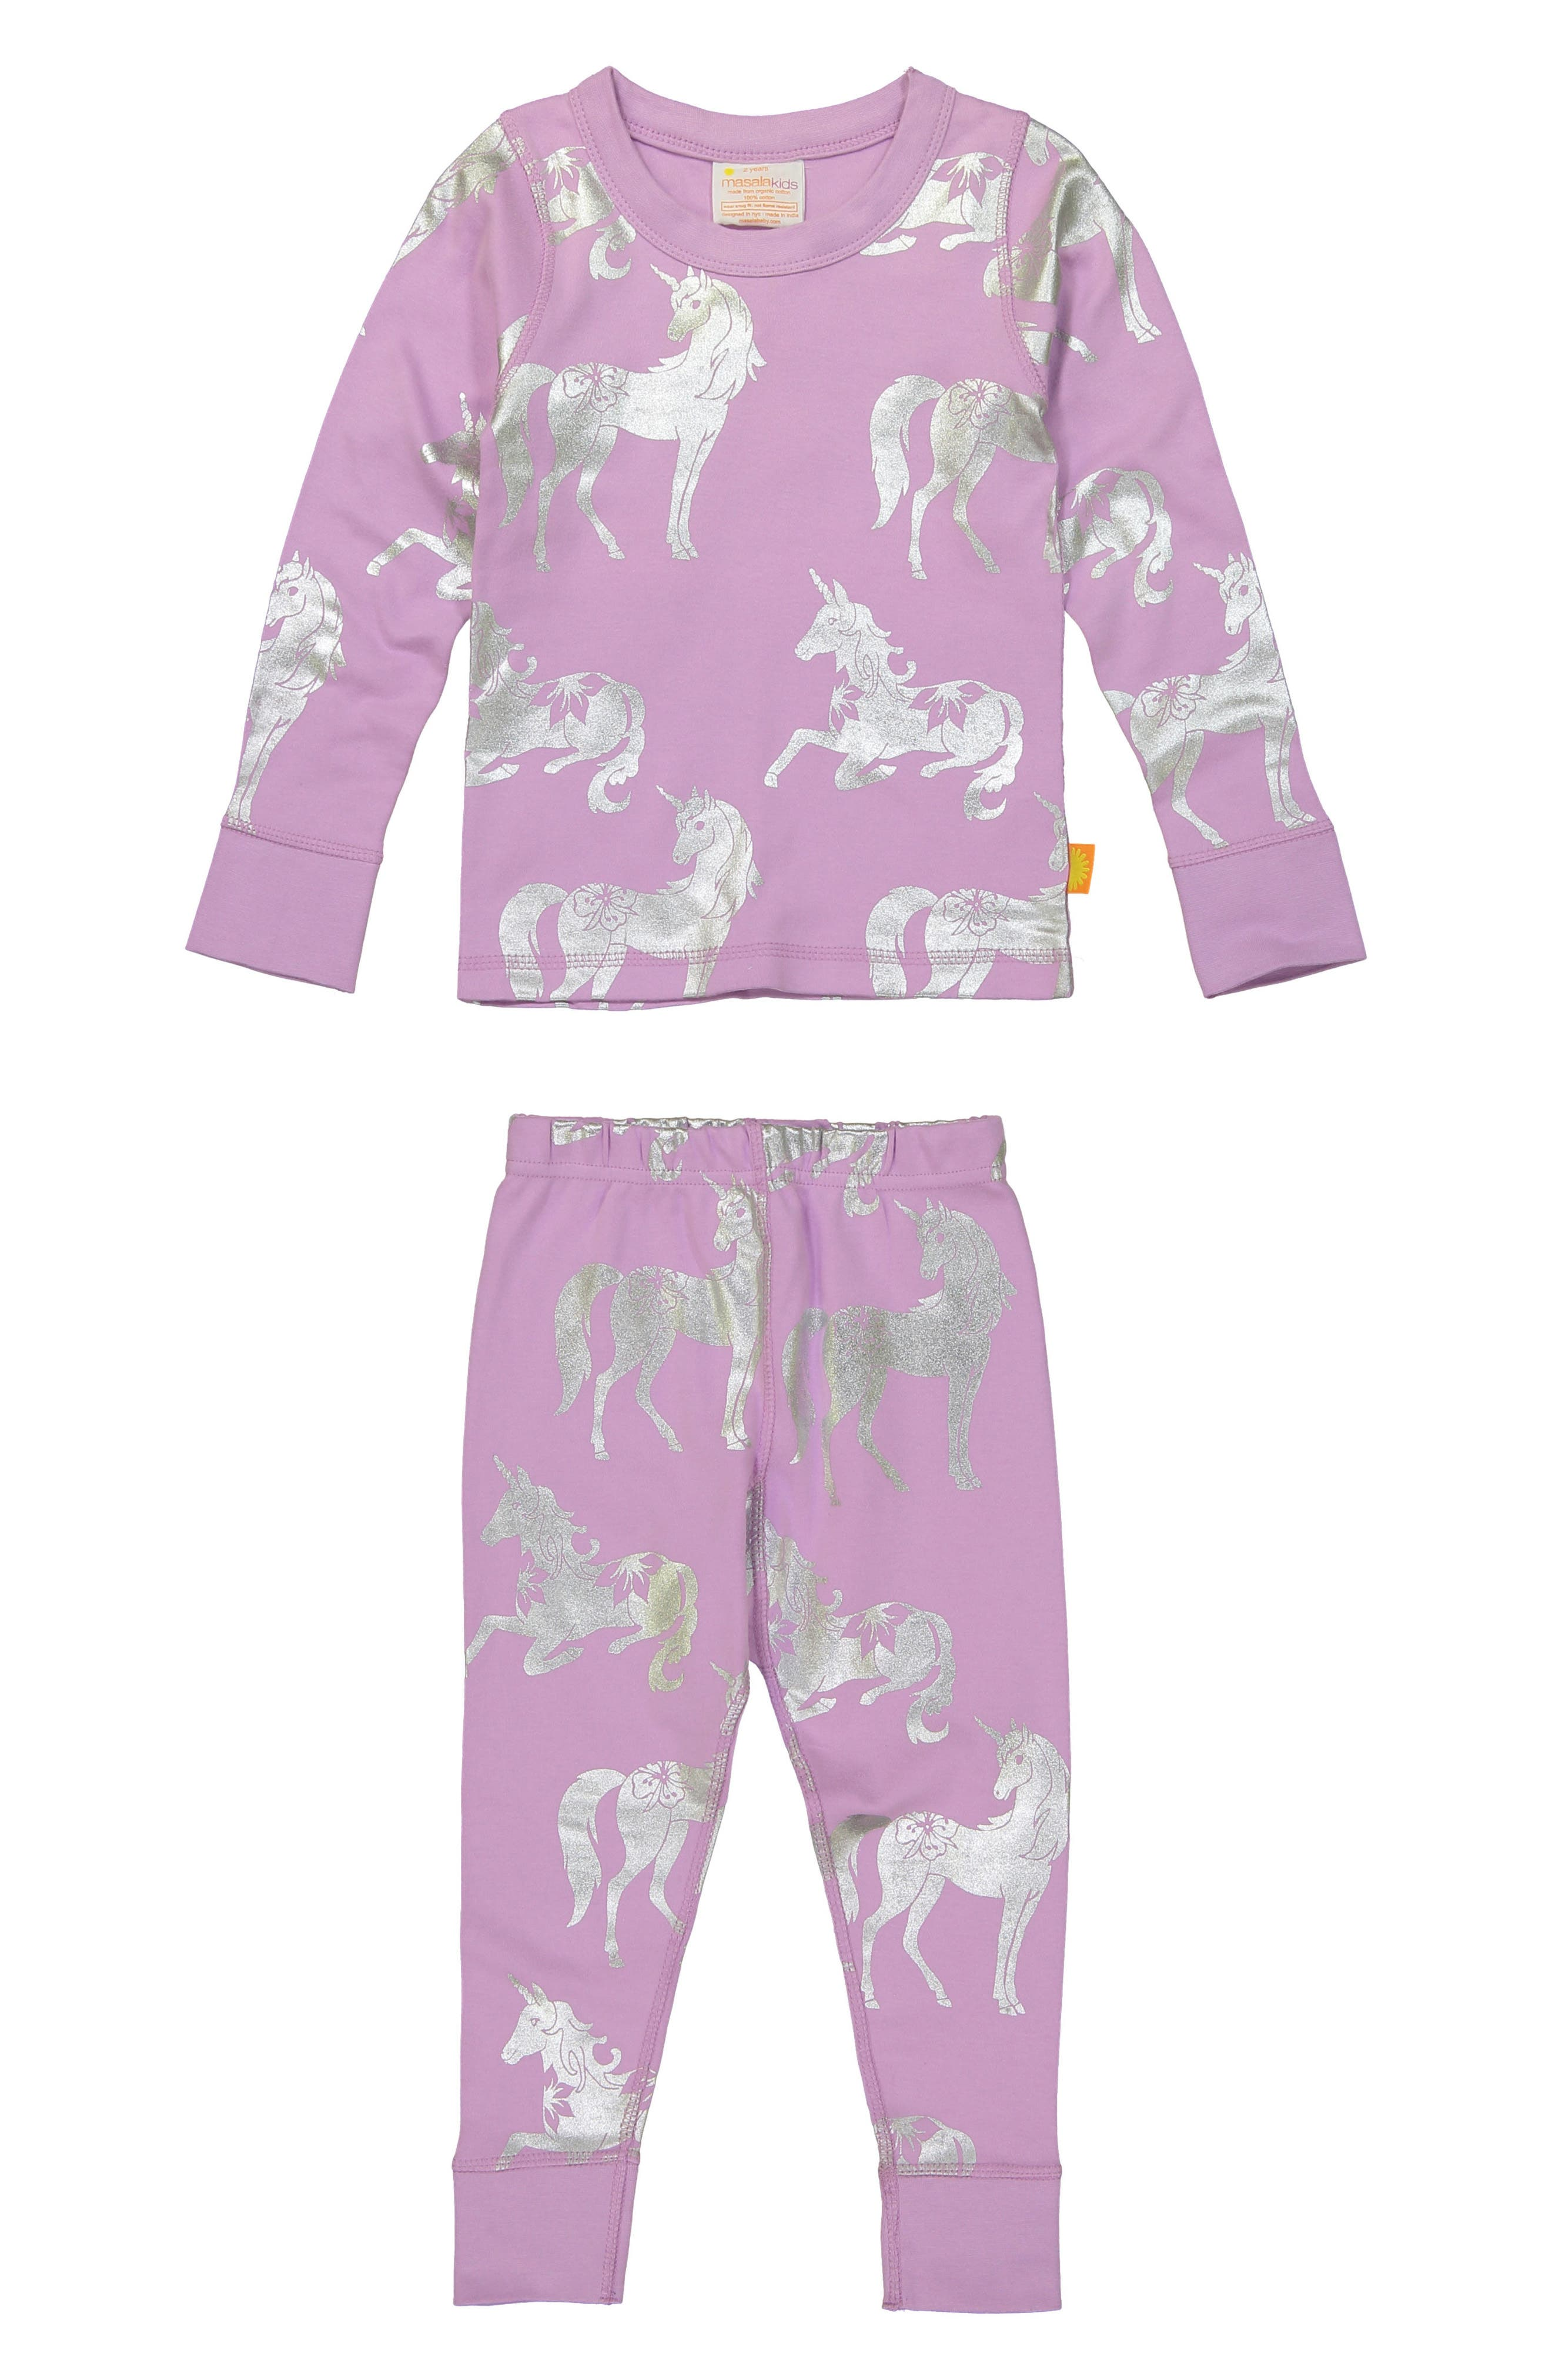 Unicorn Organic Cotton Fitted Two-Piece Pajamas,                             Main thumbnail 1, color,                             Lavender